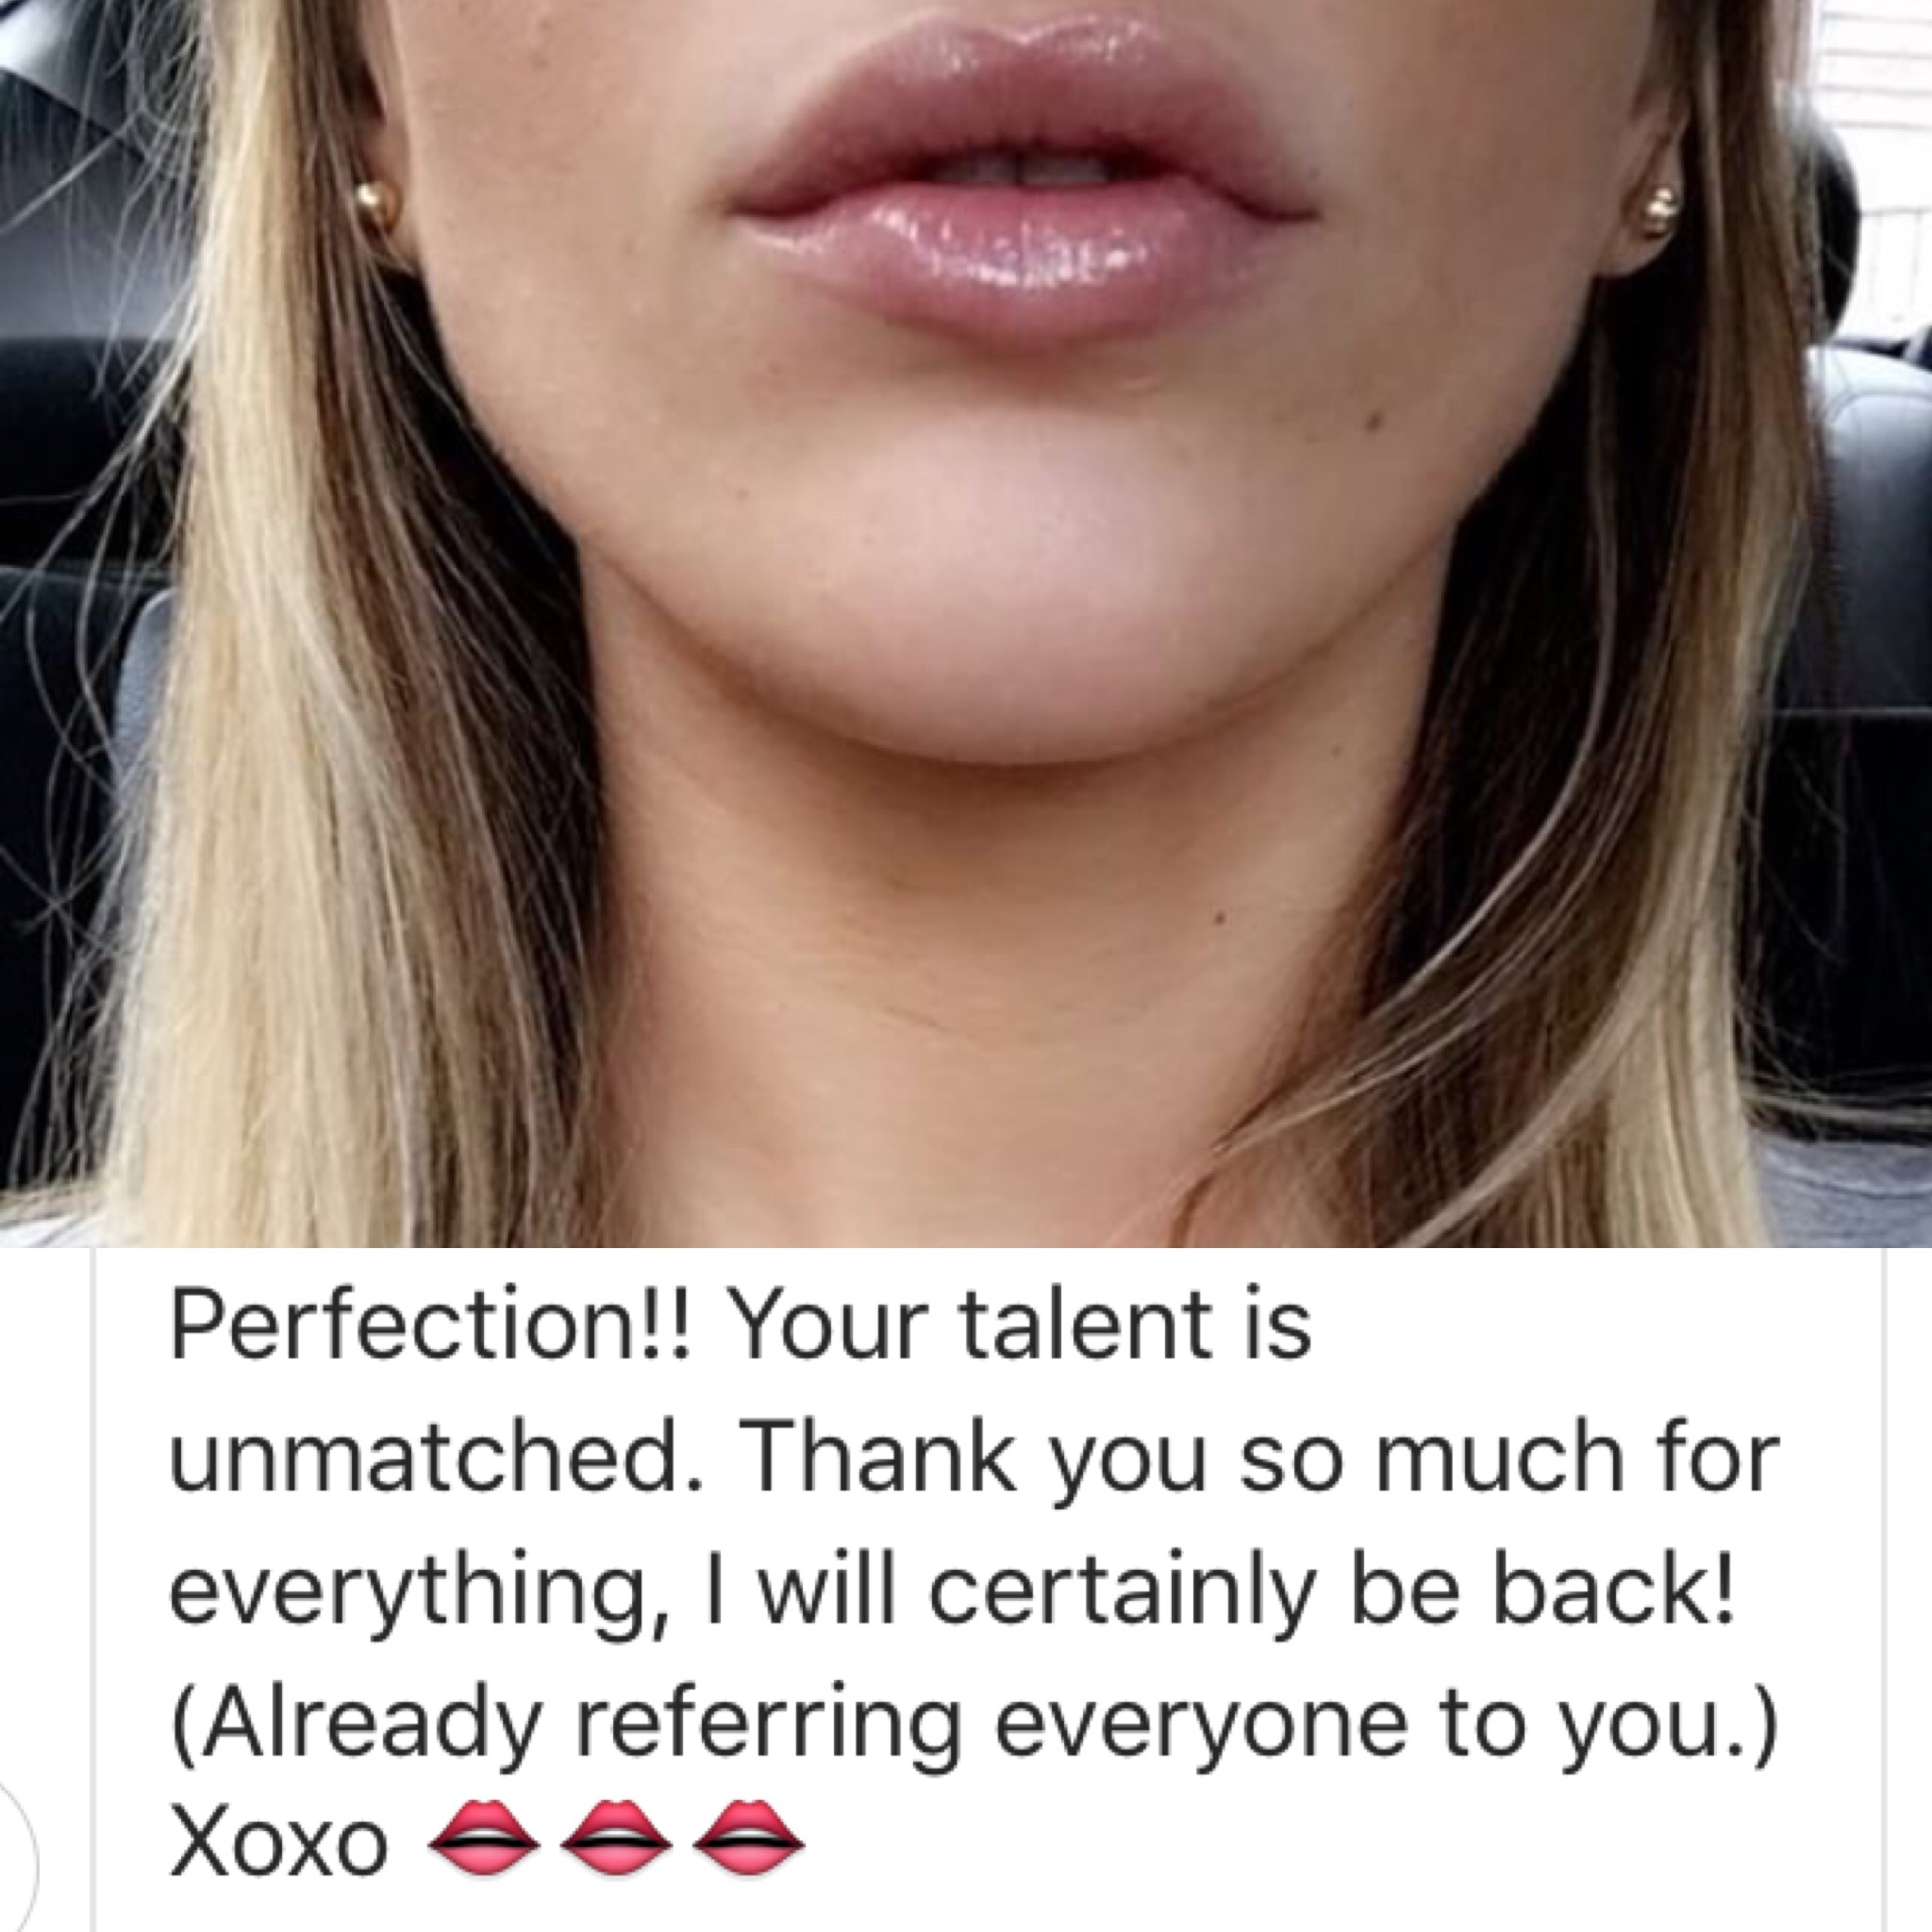 Photo and note from a lip augmentation patient